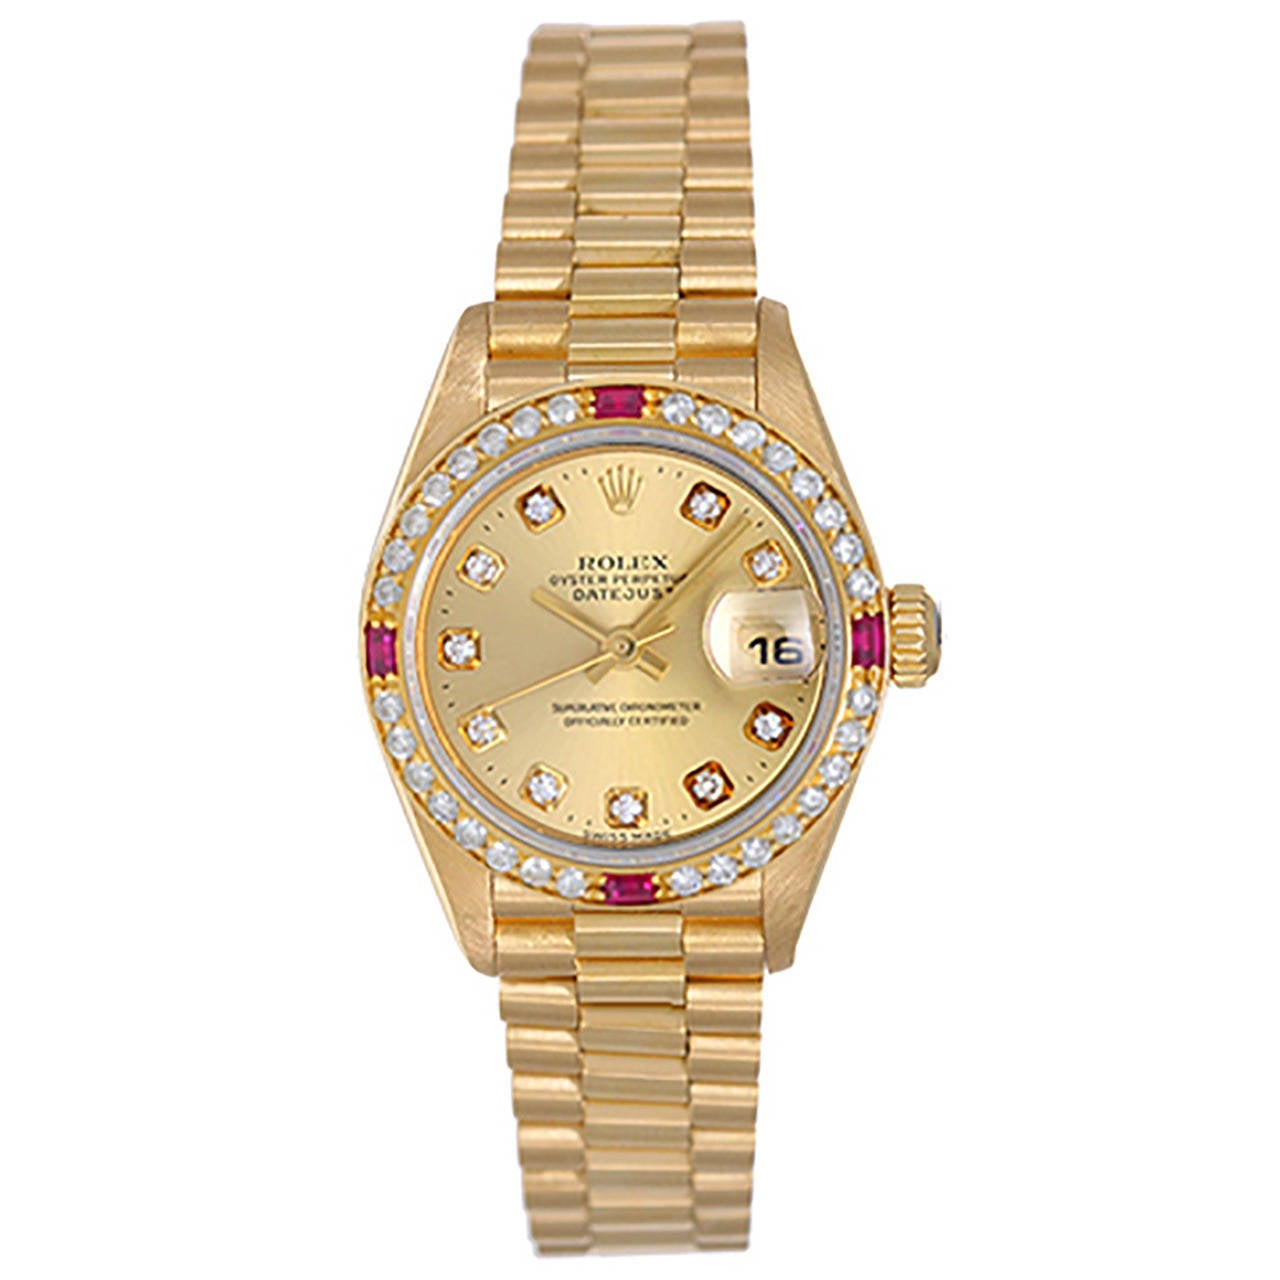 Rolex Lady's Yellow Gold Diamond President Automatic Wristwatch Ref 69178 For Sale